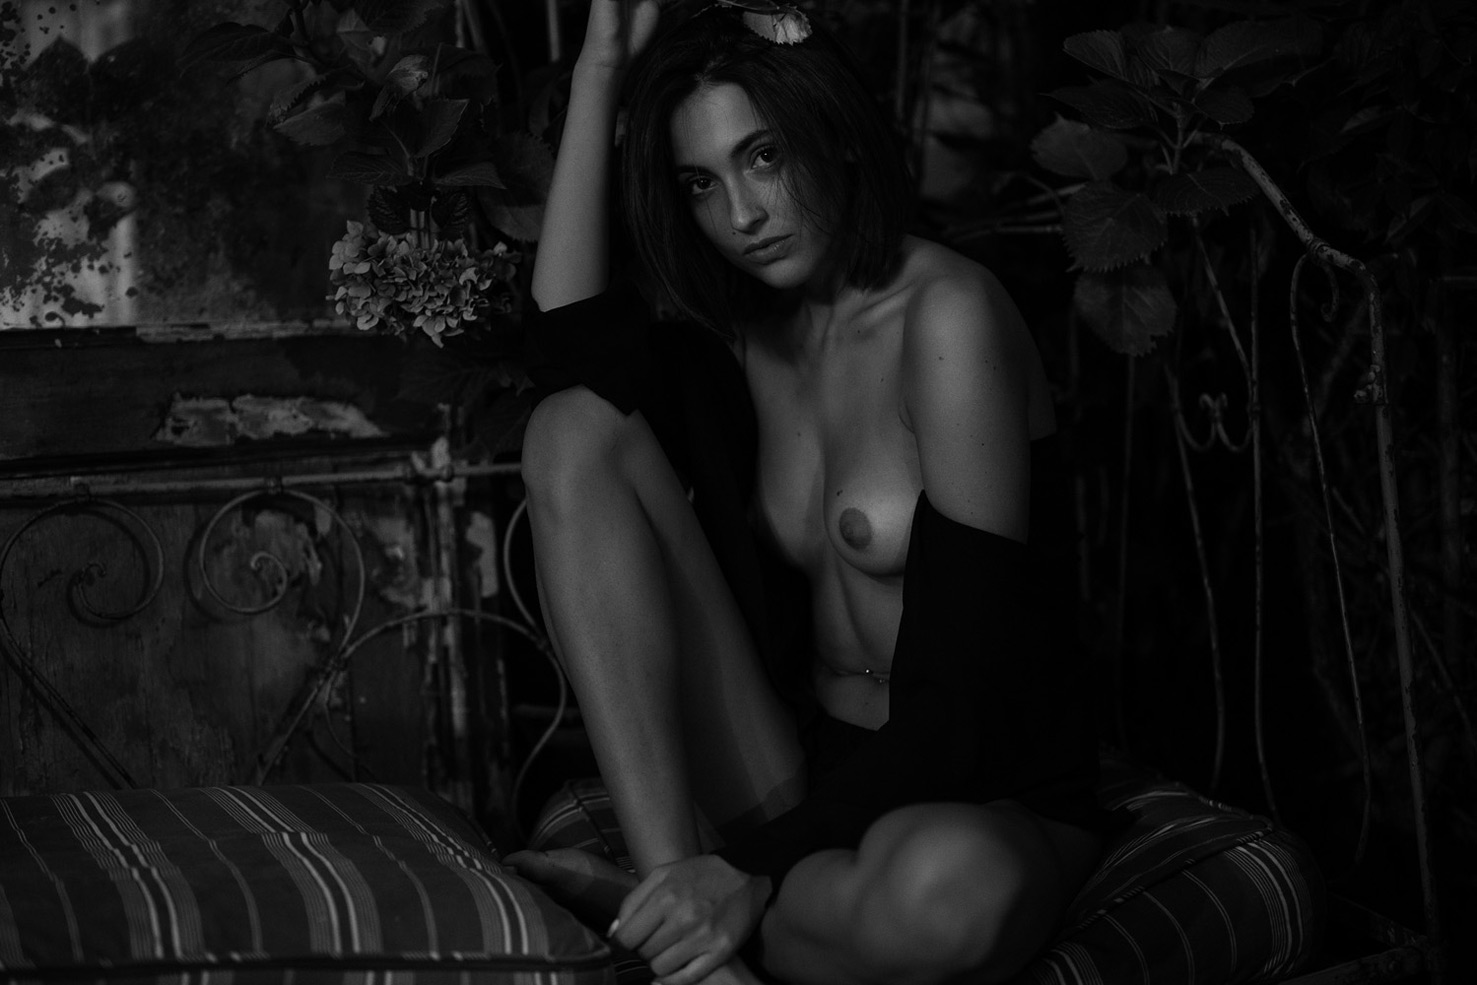 Эрика Альбонетти / Erika Albonetti nude by Peter Coulson - NU Expo